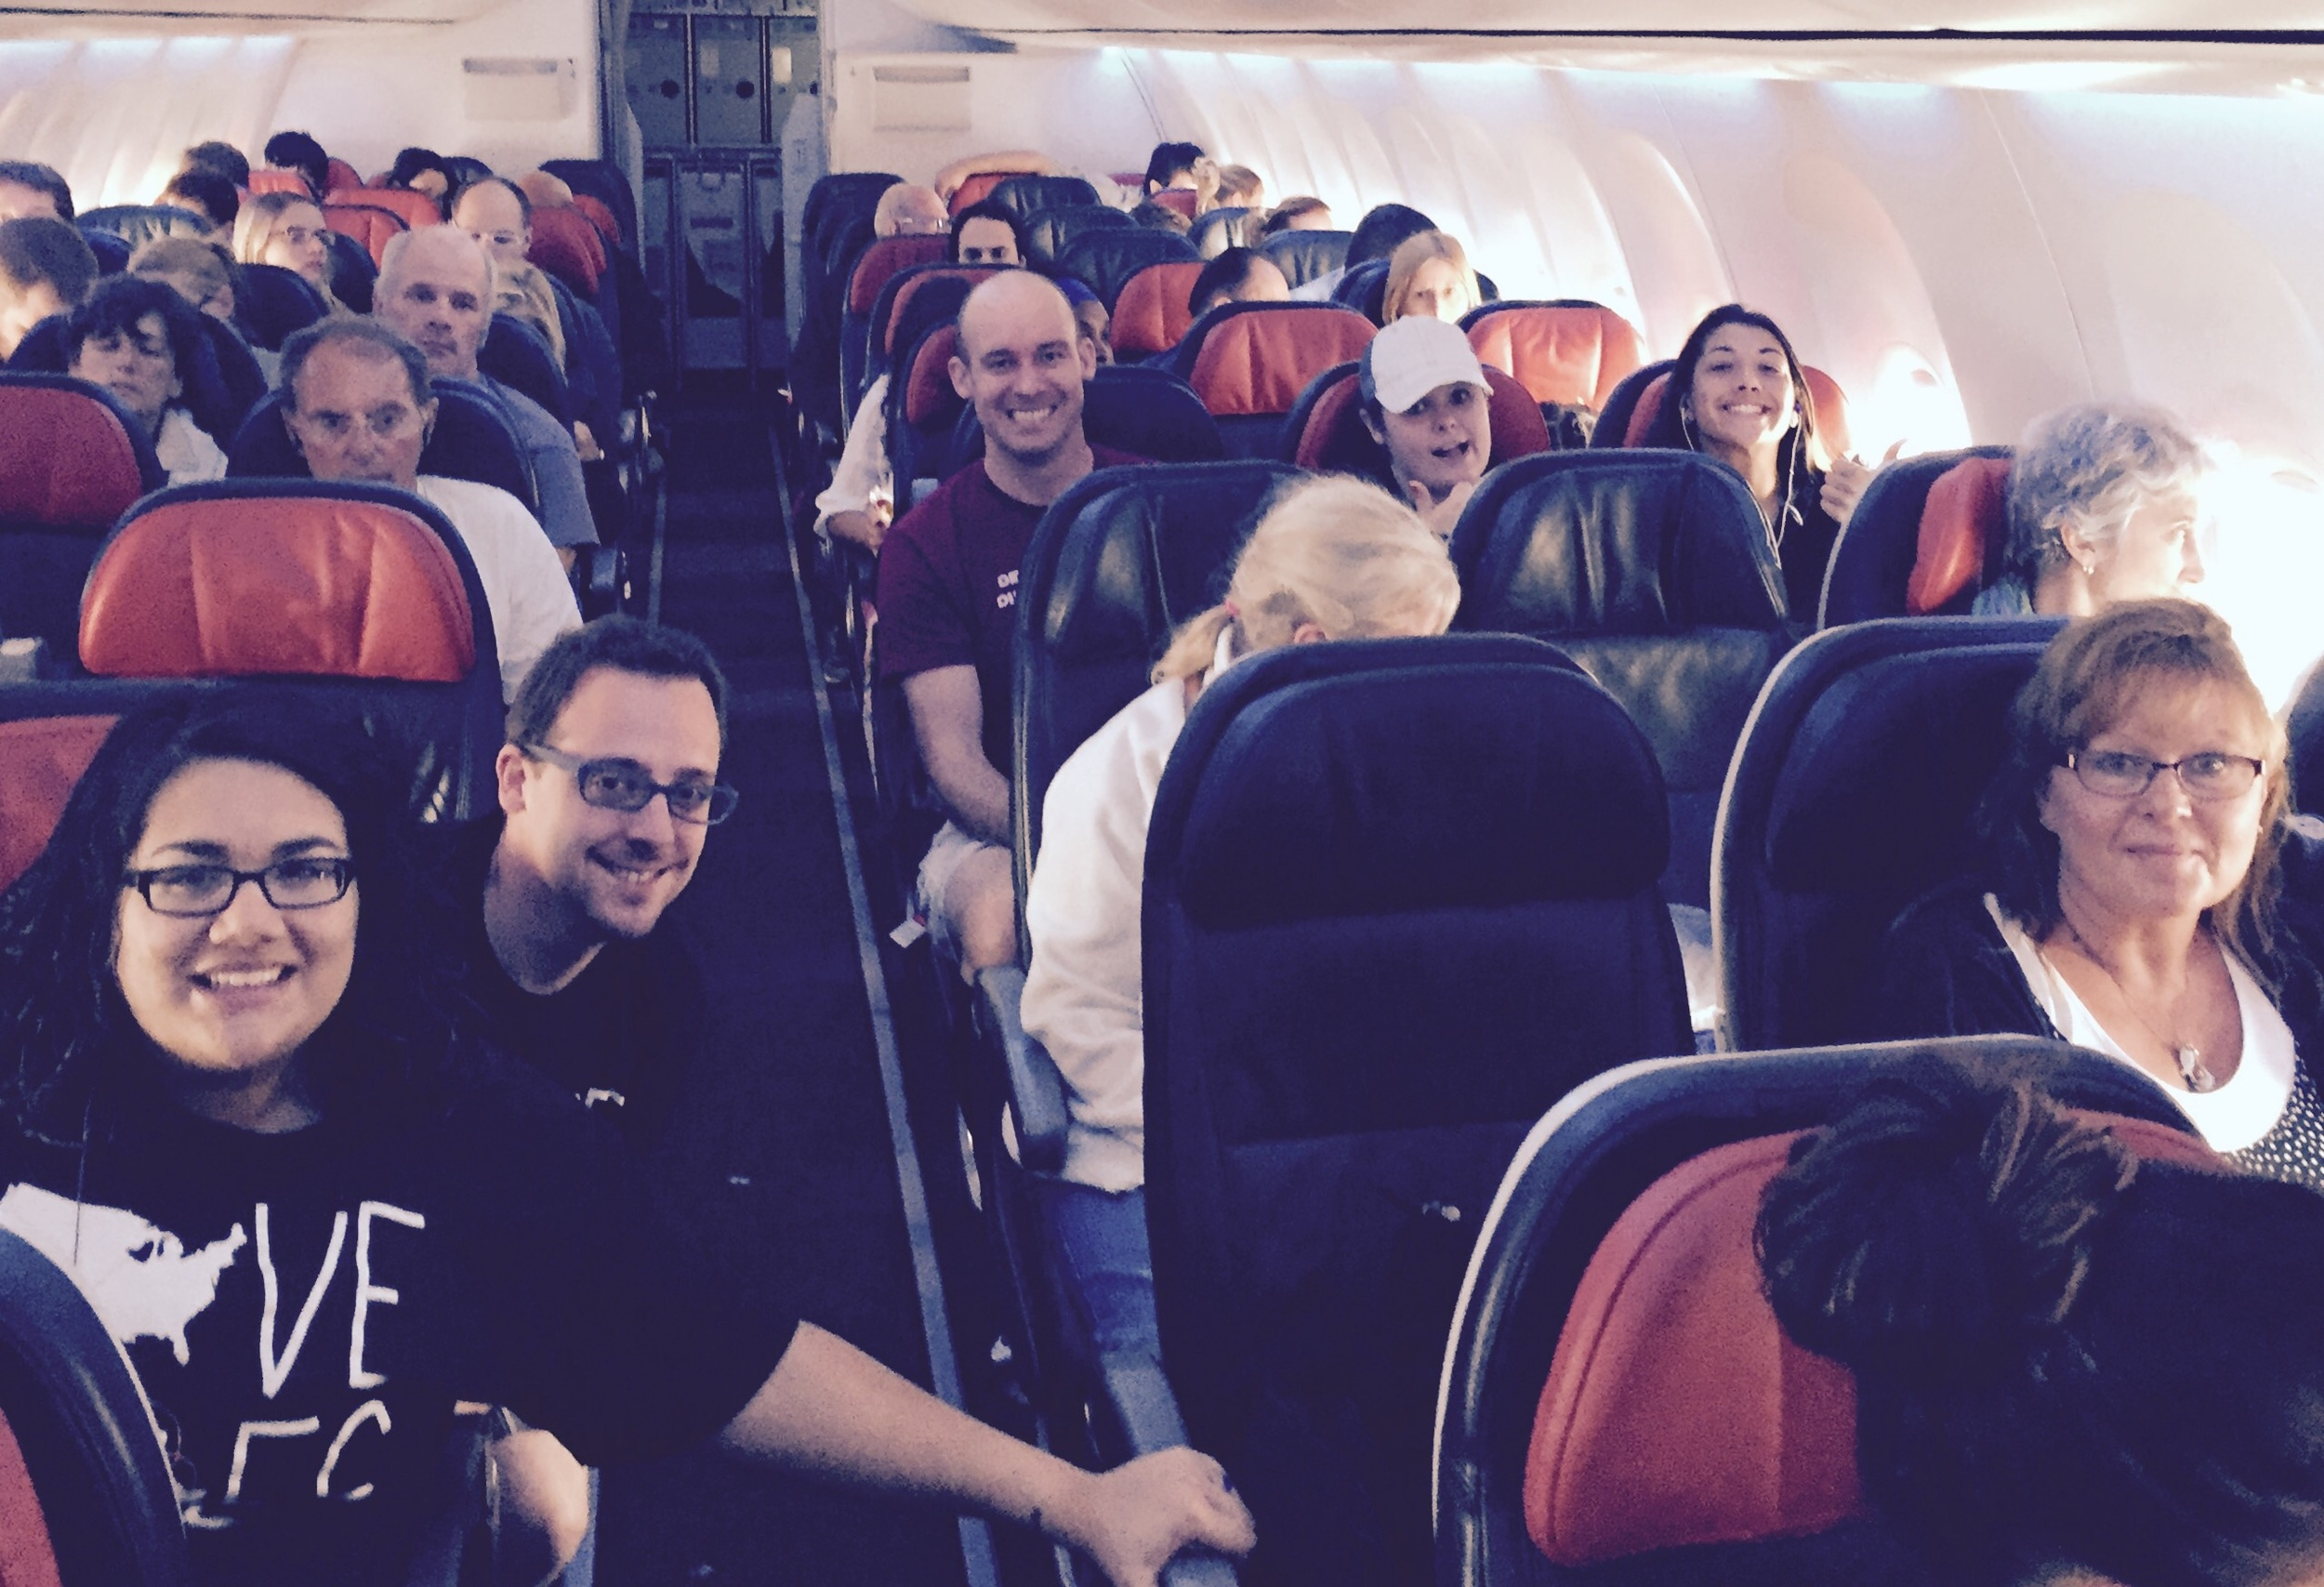 The team was pretty bright-eyed even after the first flight touched down in Turkey.